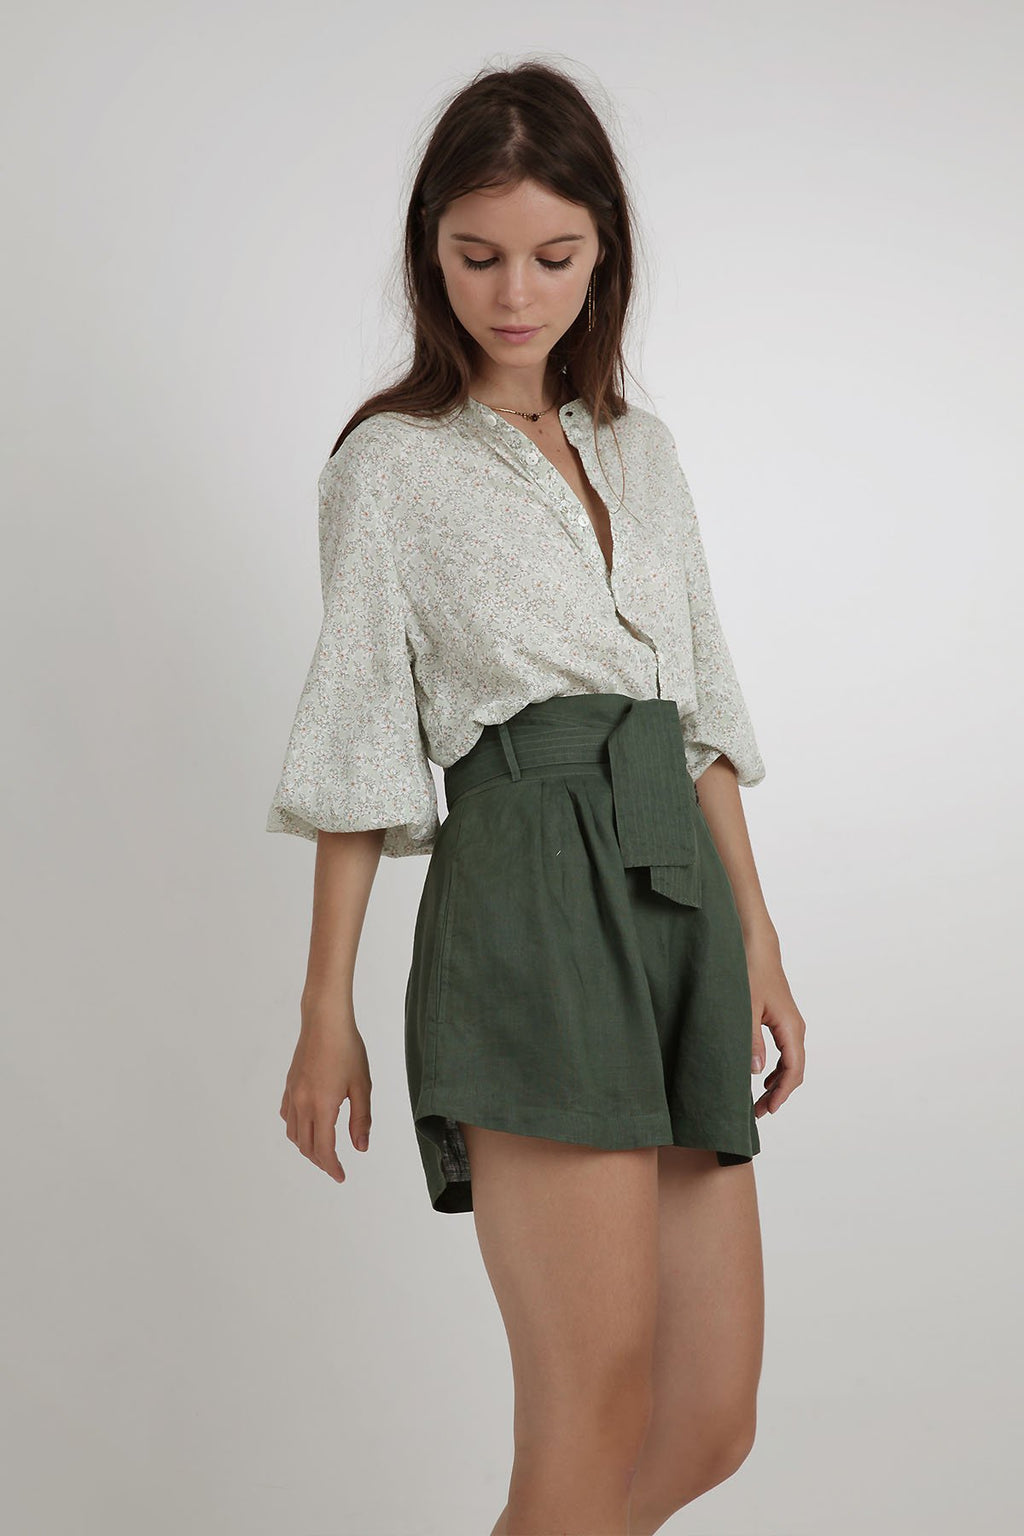 LILYA - Agatha Blouse online at PAYA boutique